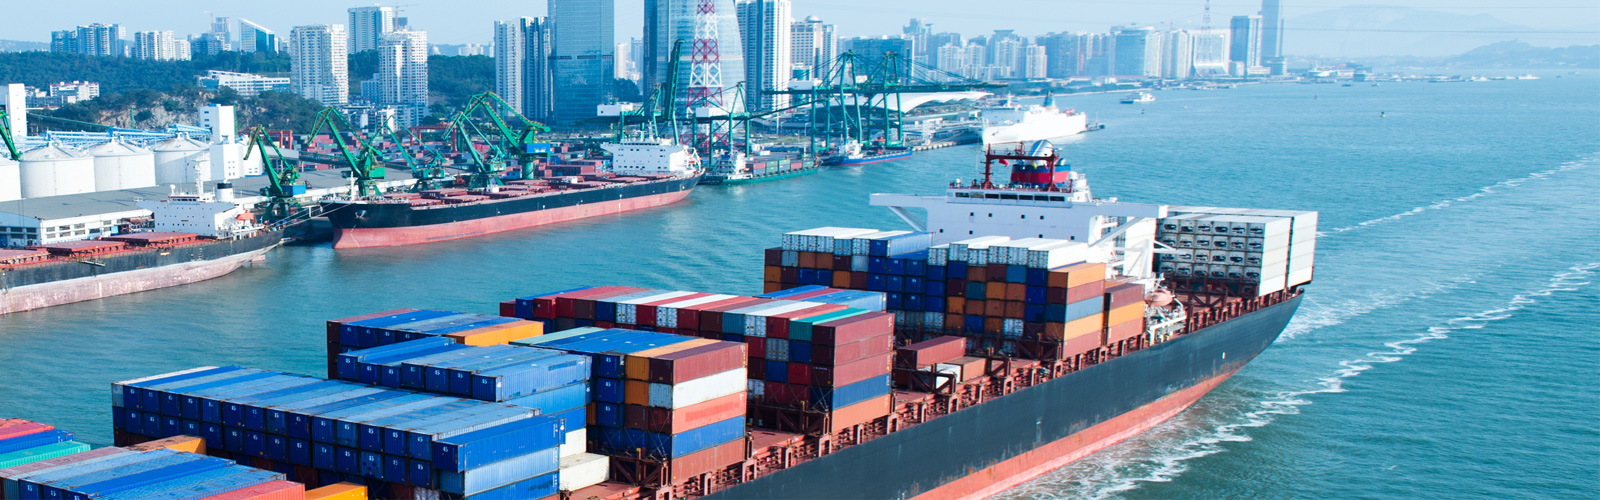 Shipping services | Shipping Worldwide | Shipping Containers